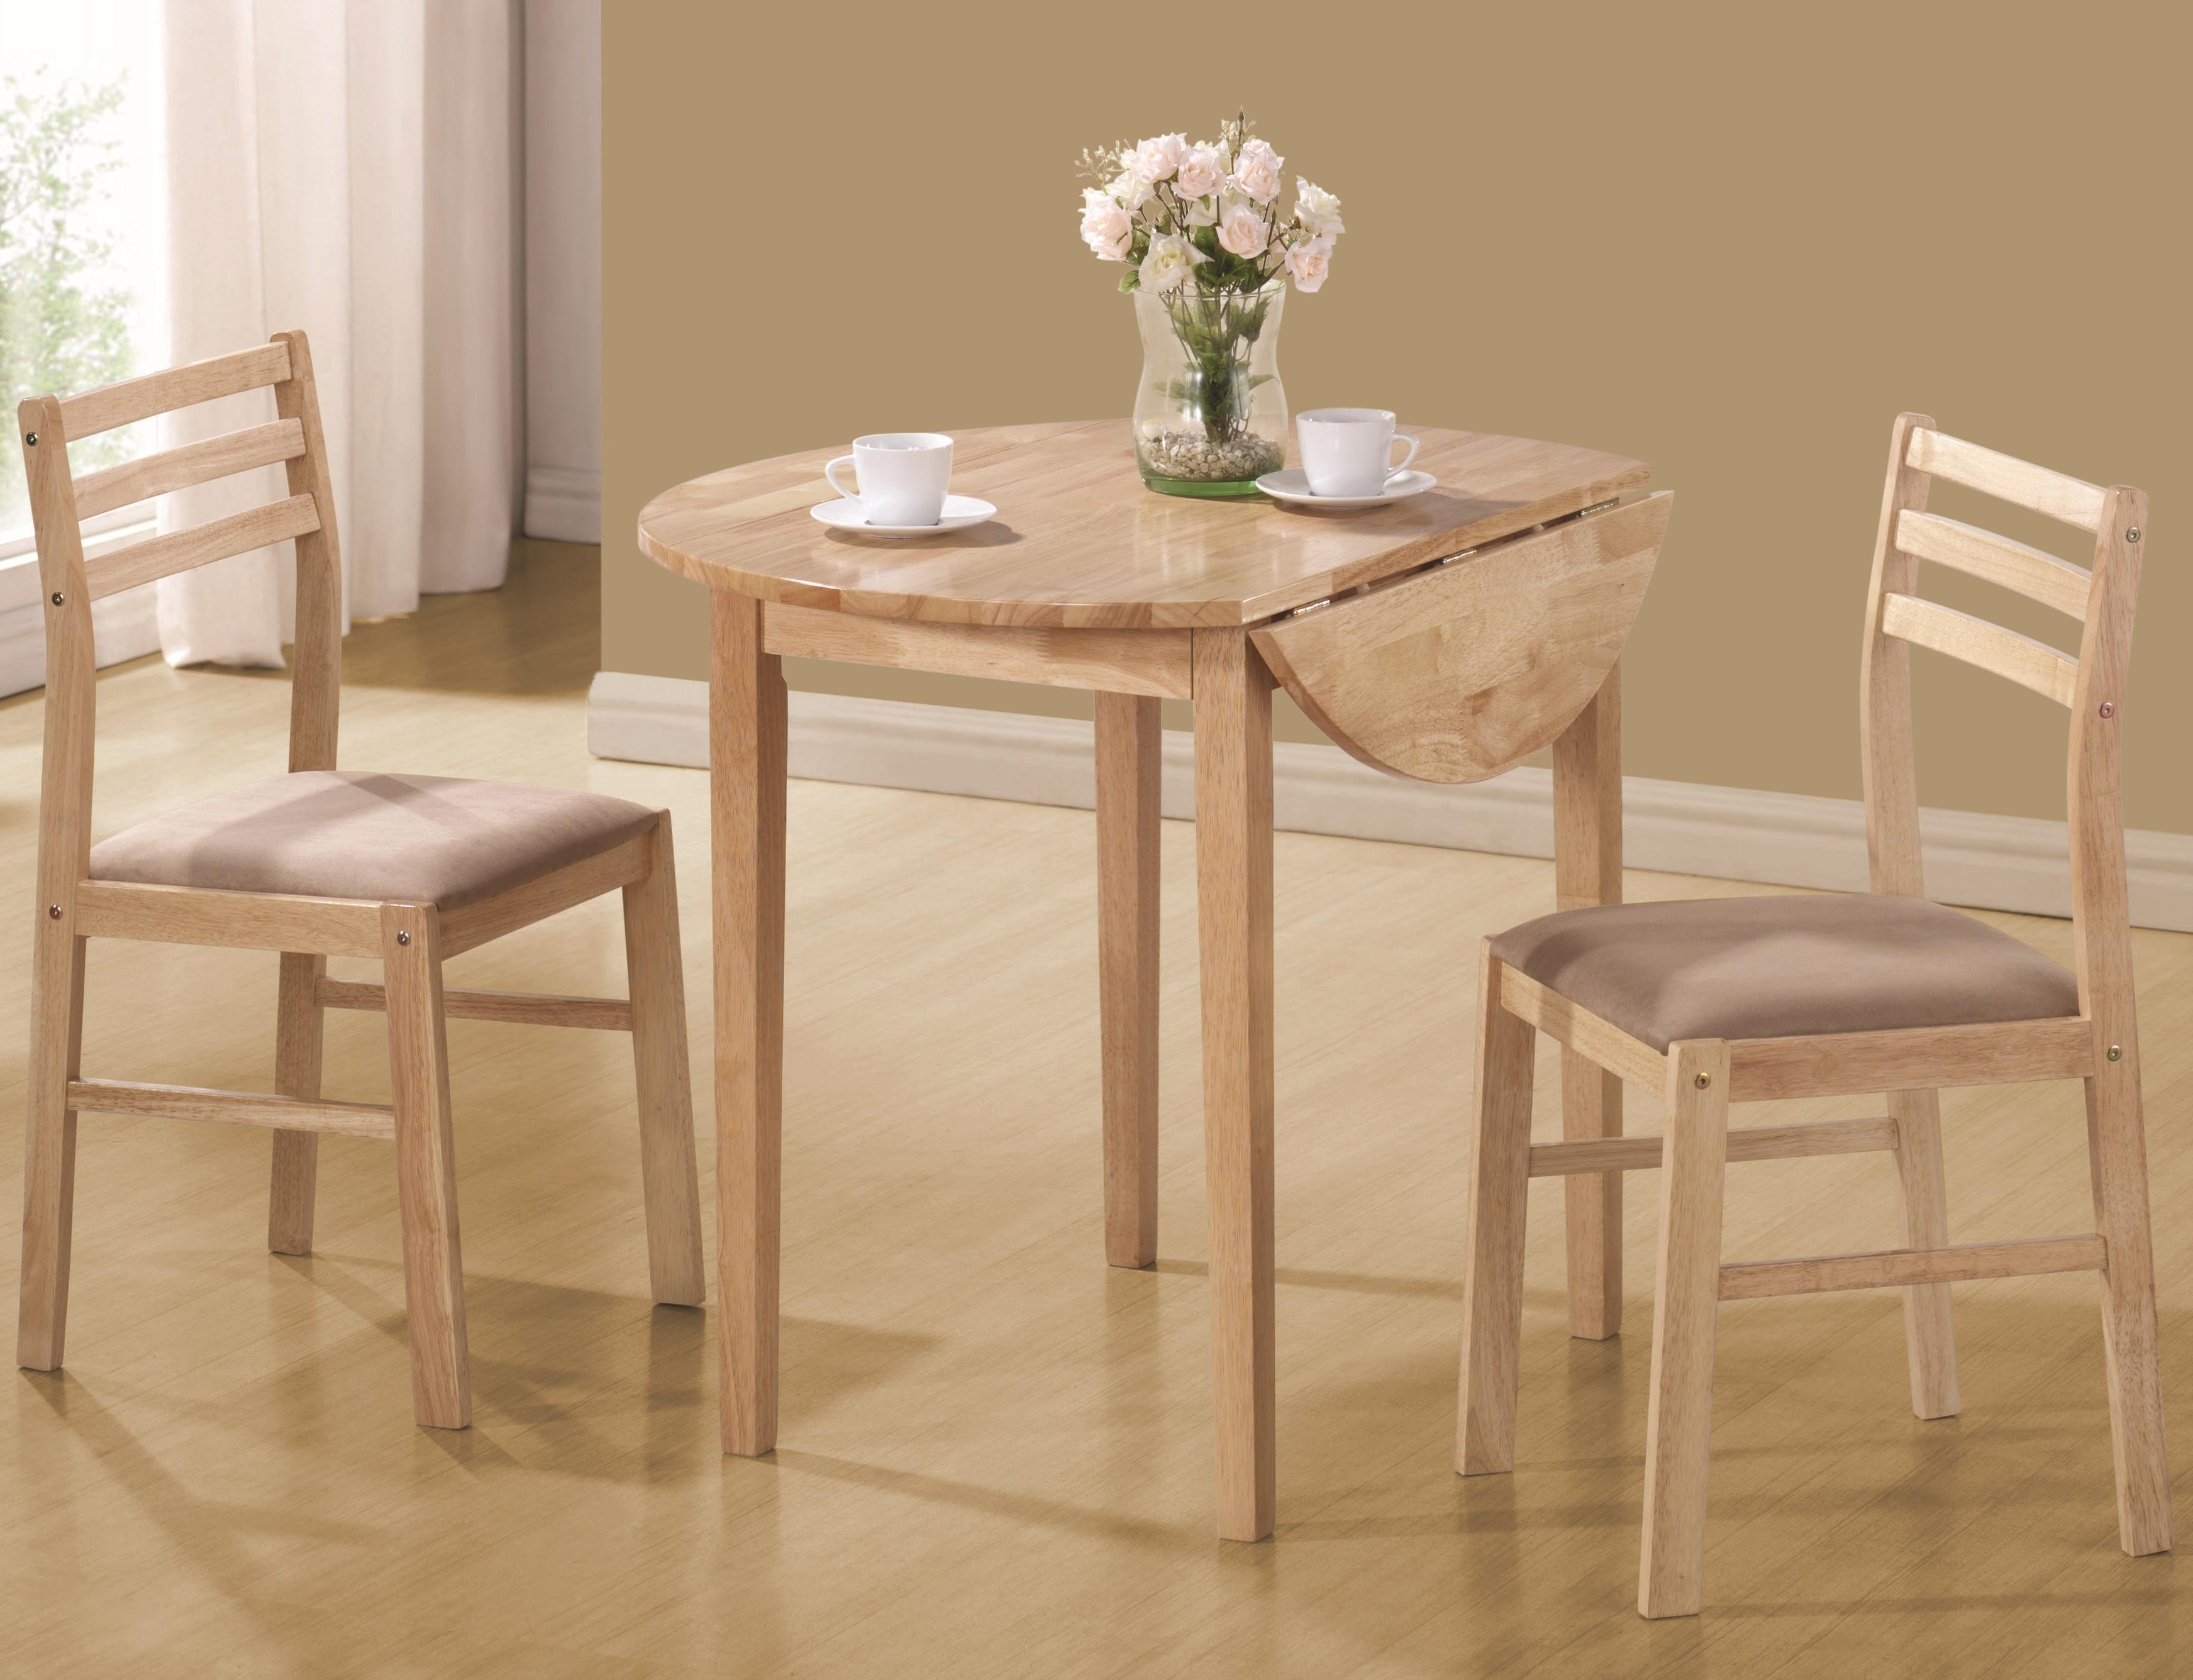 Breakfast Nook Table And Chair Set Co 130006 Regarding Newest 3 Piece Breakfast Nook Dinning Set (View 10 of 20)